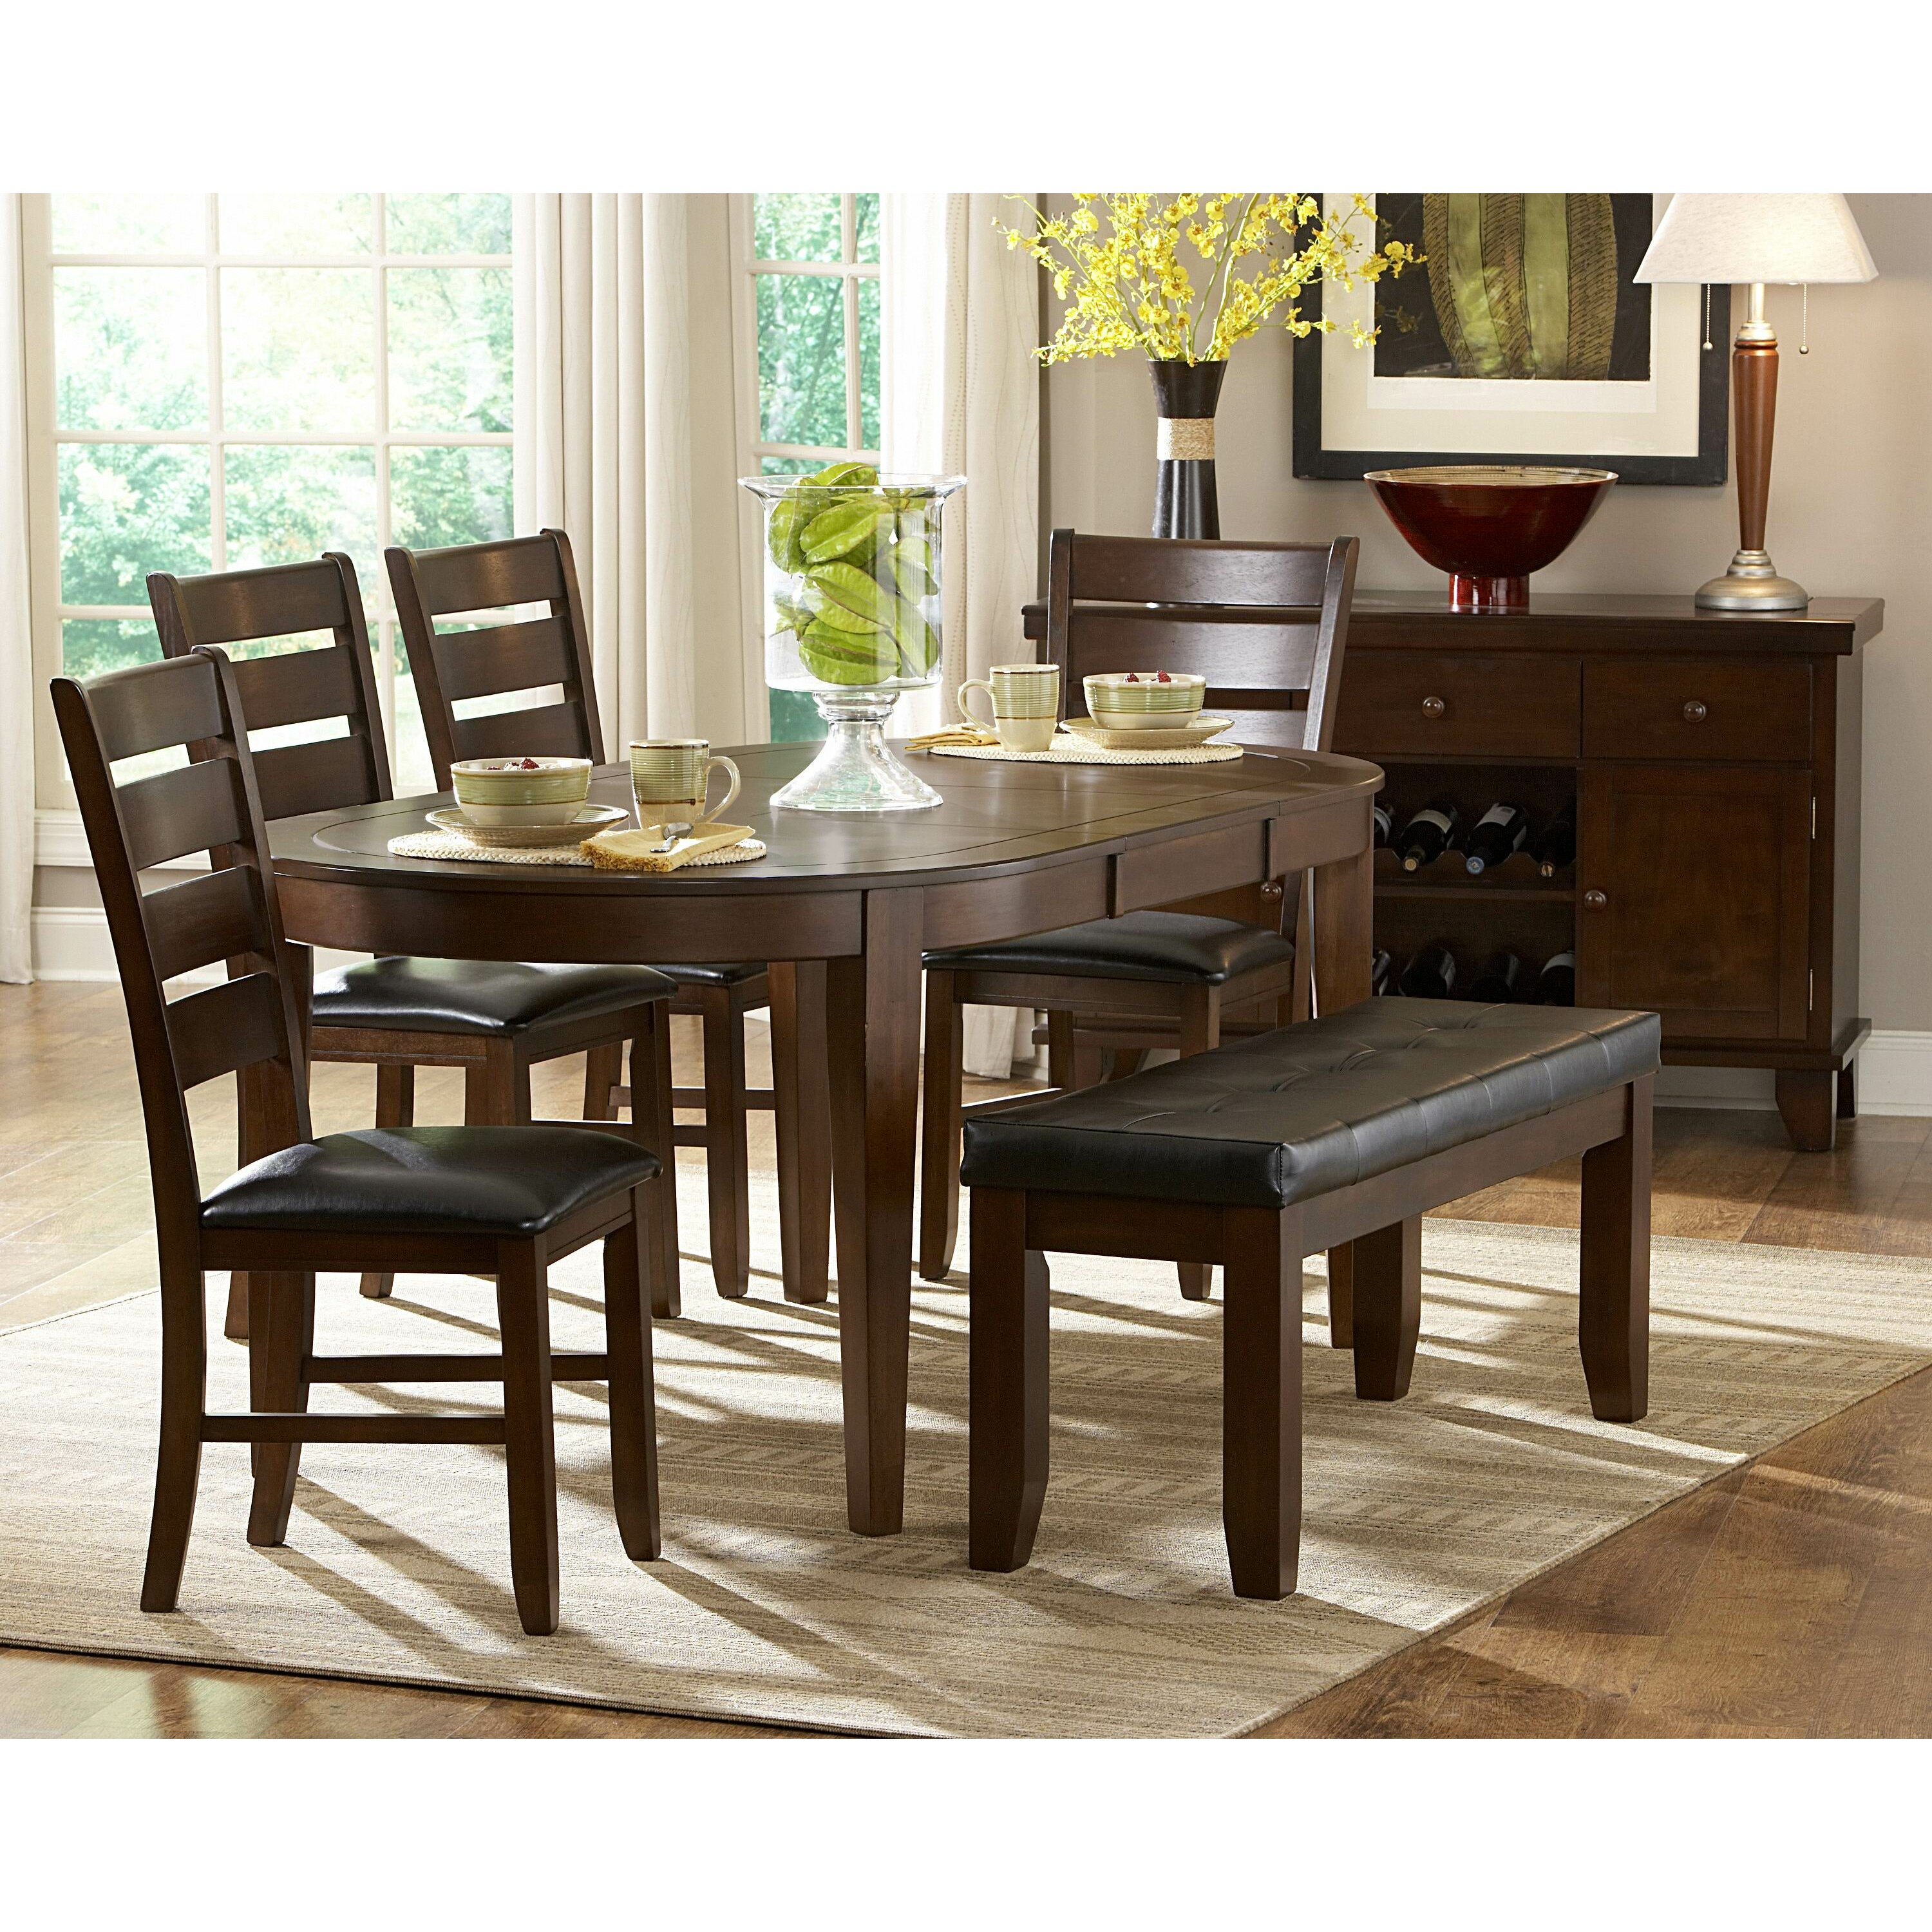 Contemporary 6 Piece Dining Room Table Set With Bench By: Woodhaven Hill Ameillia 6 Piece Dining Set & Reviews